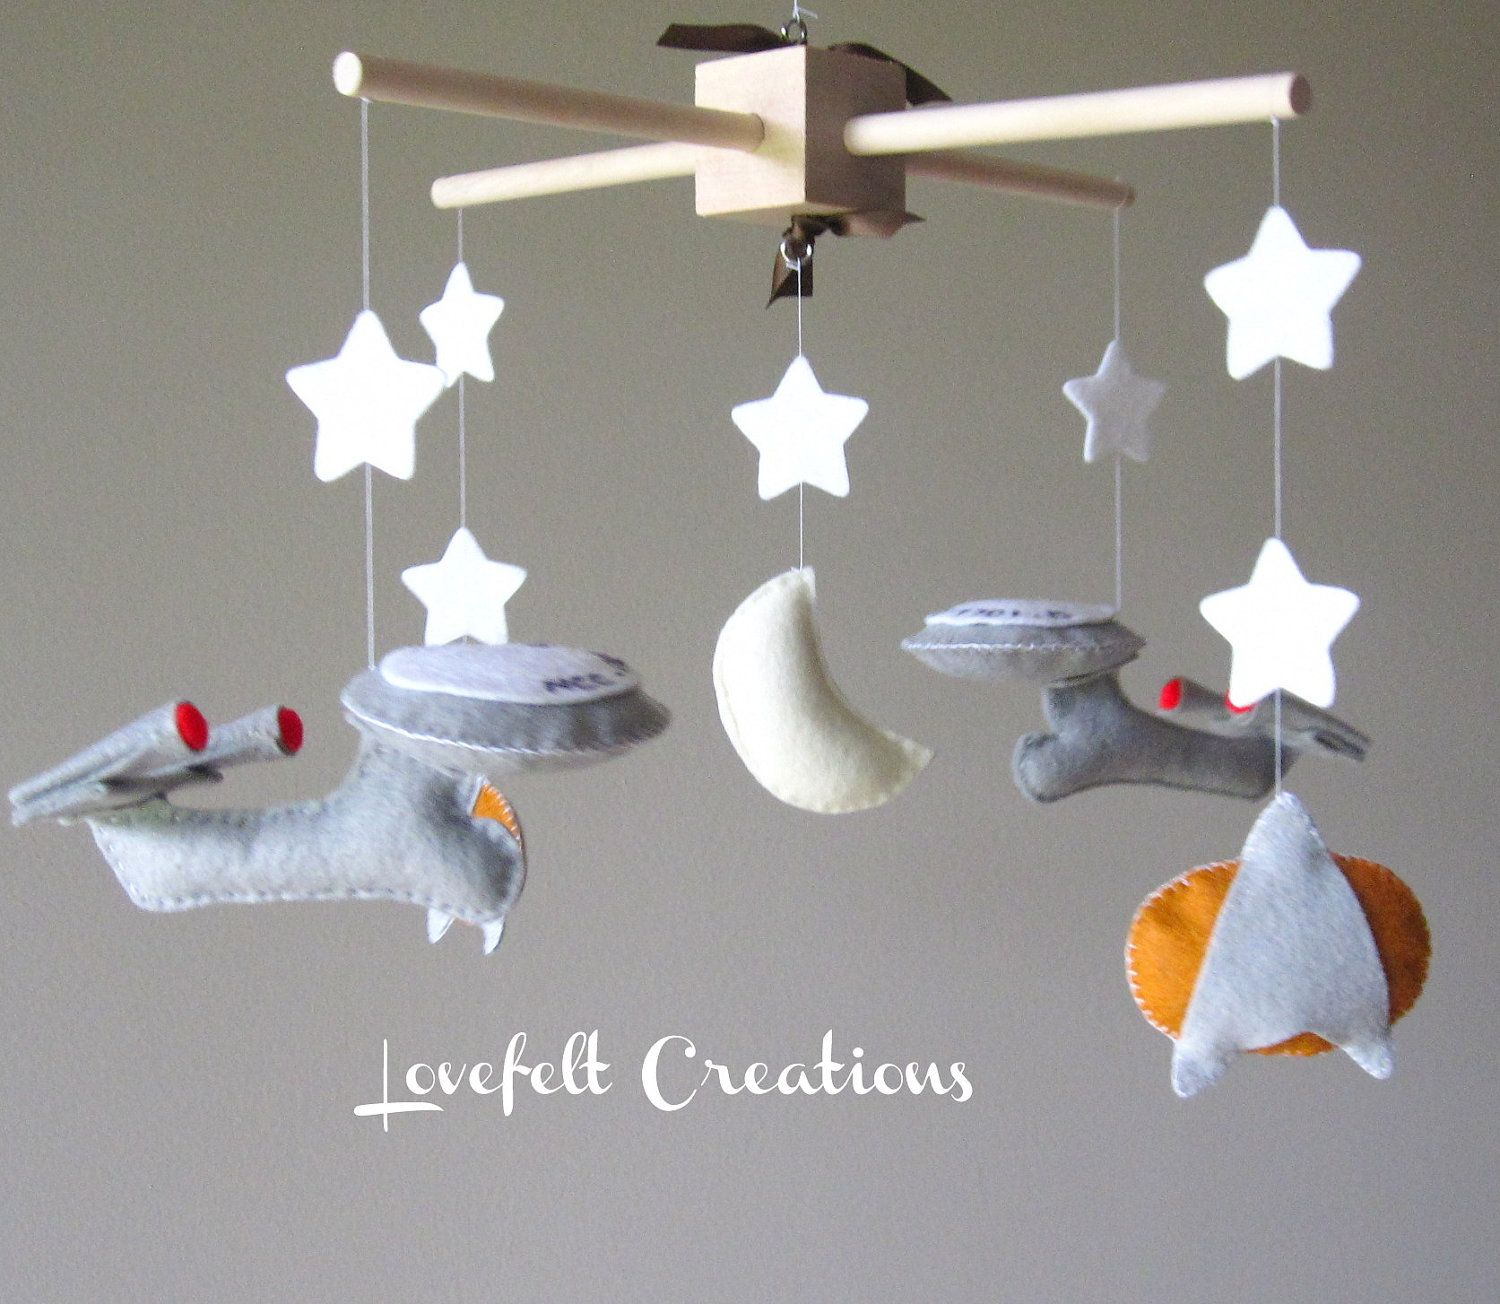 baby mobile  star trek mobile  space ship mobile  via  - baby mobile  star trek mobile  space ship mobile  via etsy